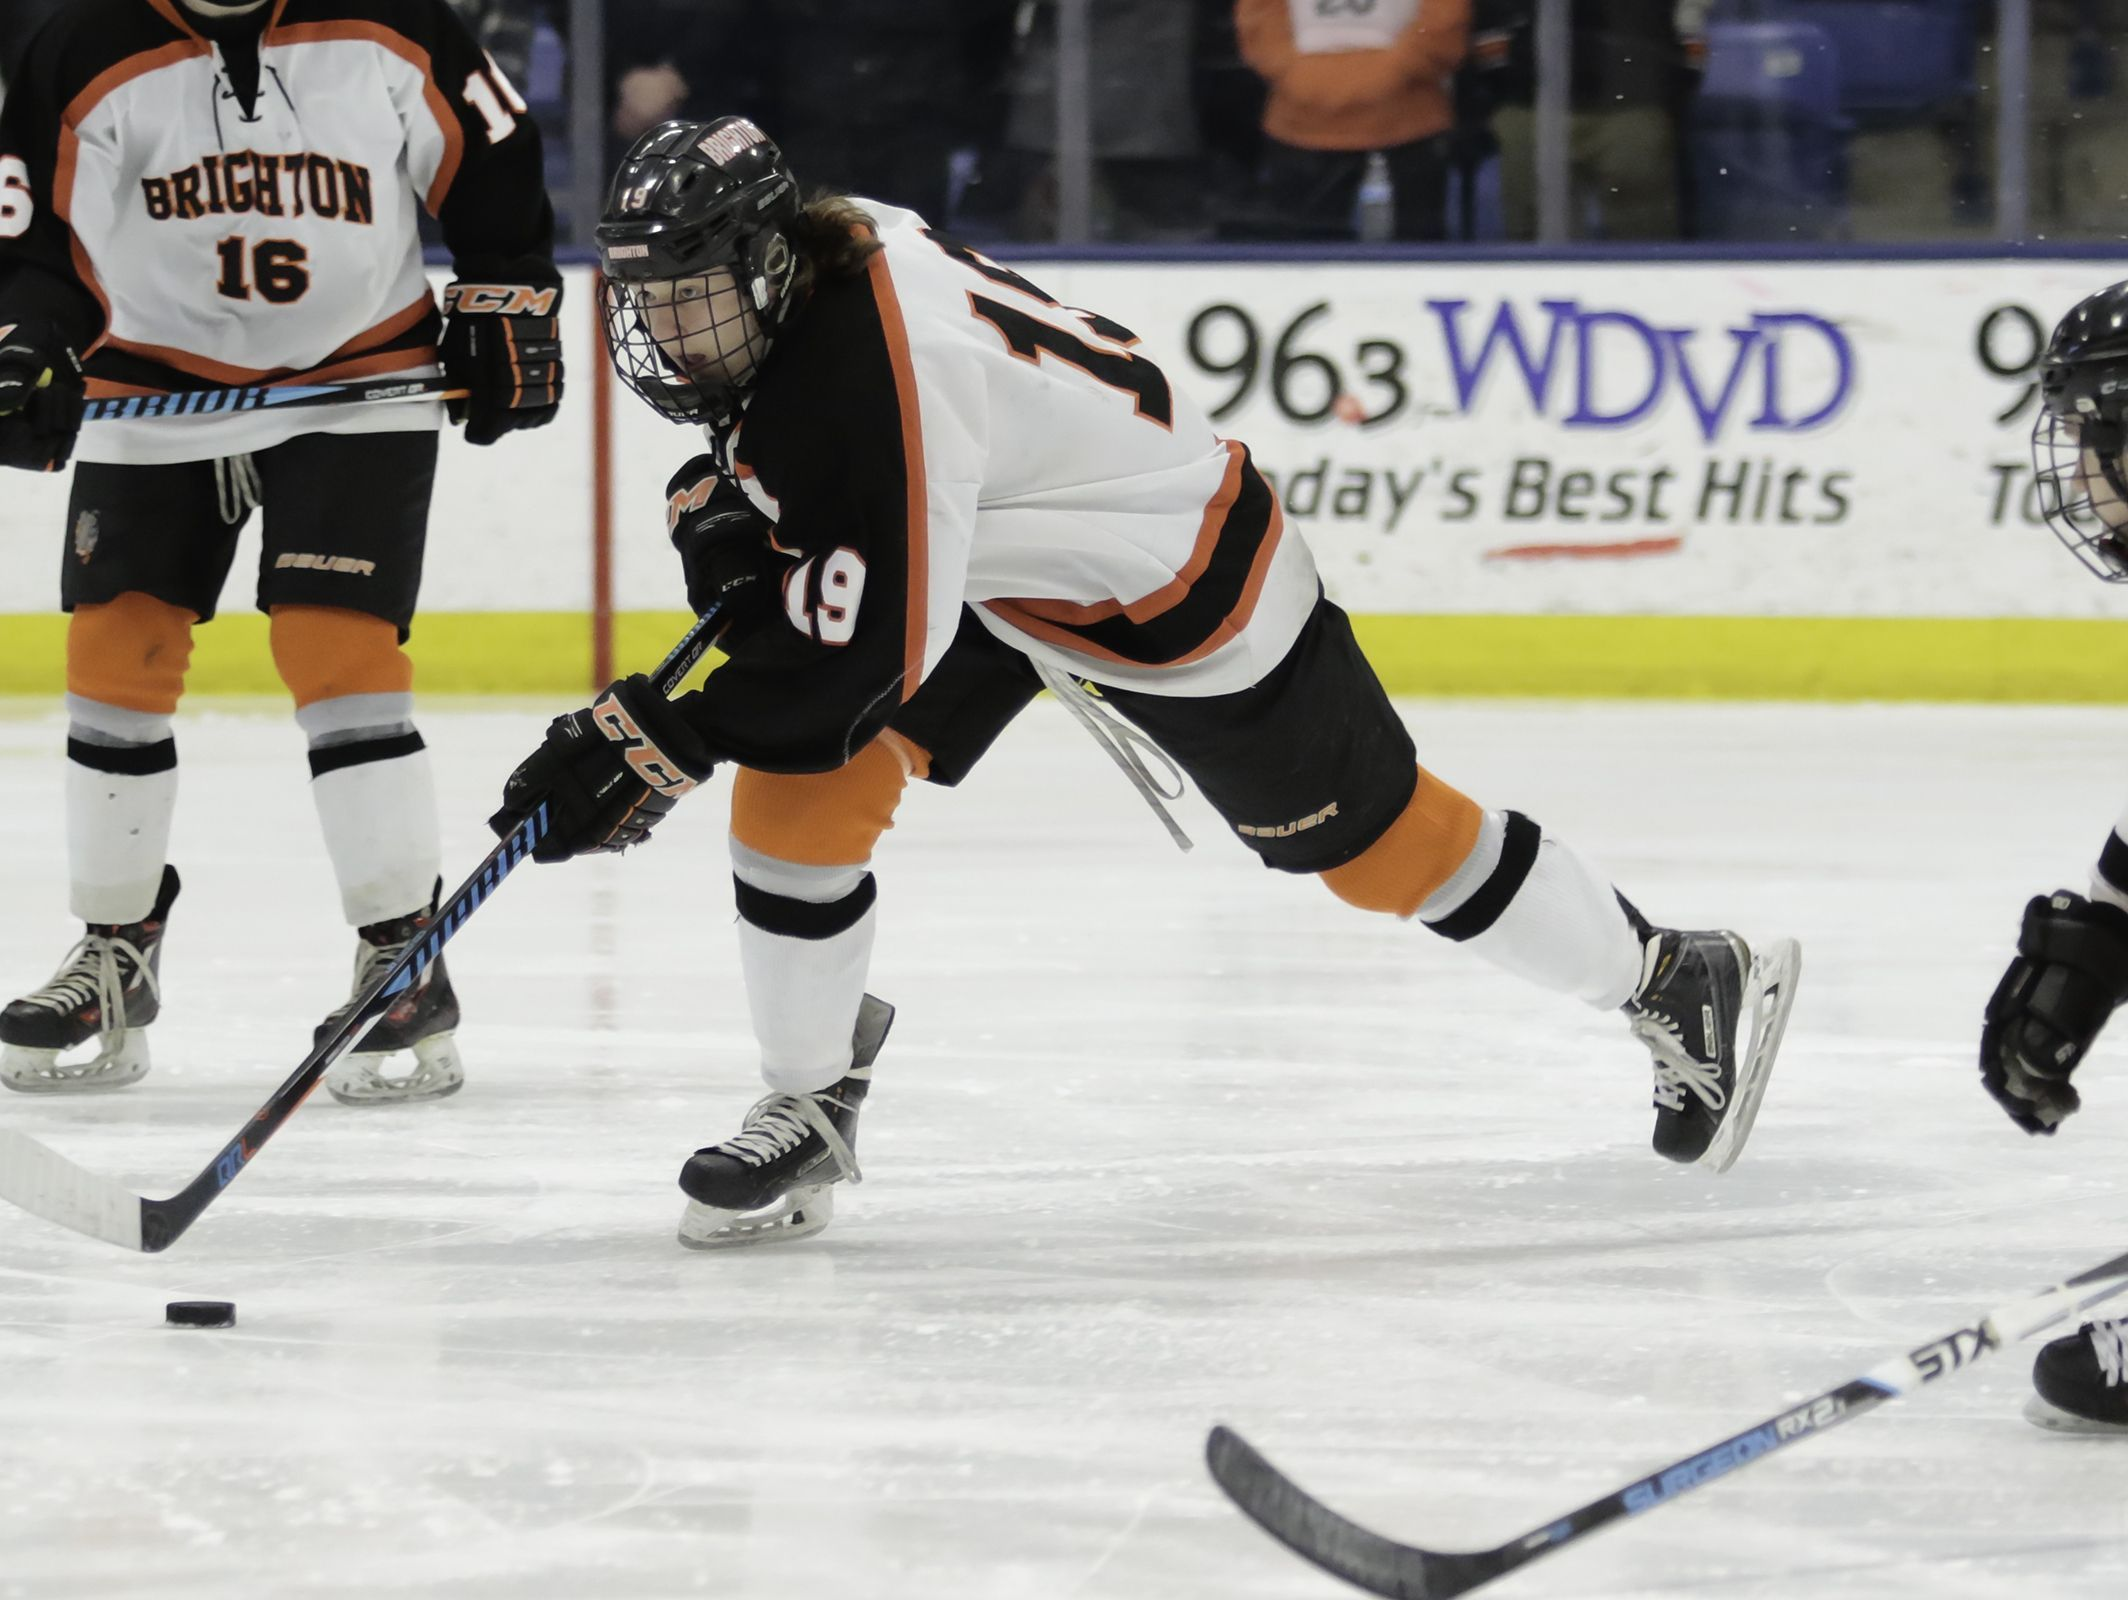 Brighton's Keith Wikman carries the puck in a 5-0 victory over Northville in the state hockey semifinals Friday.